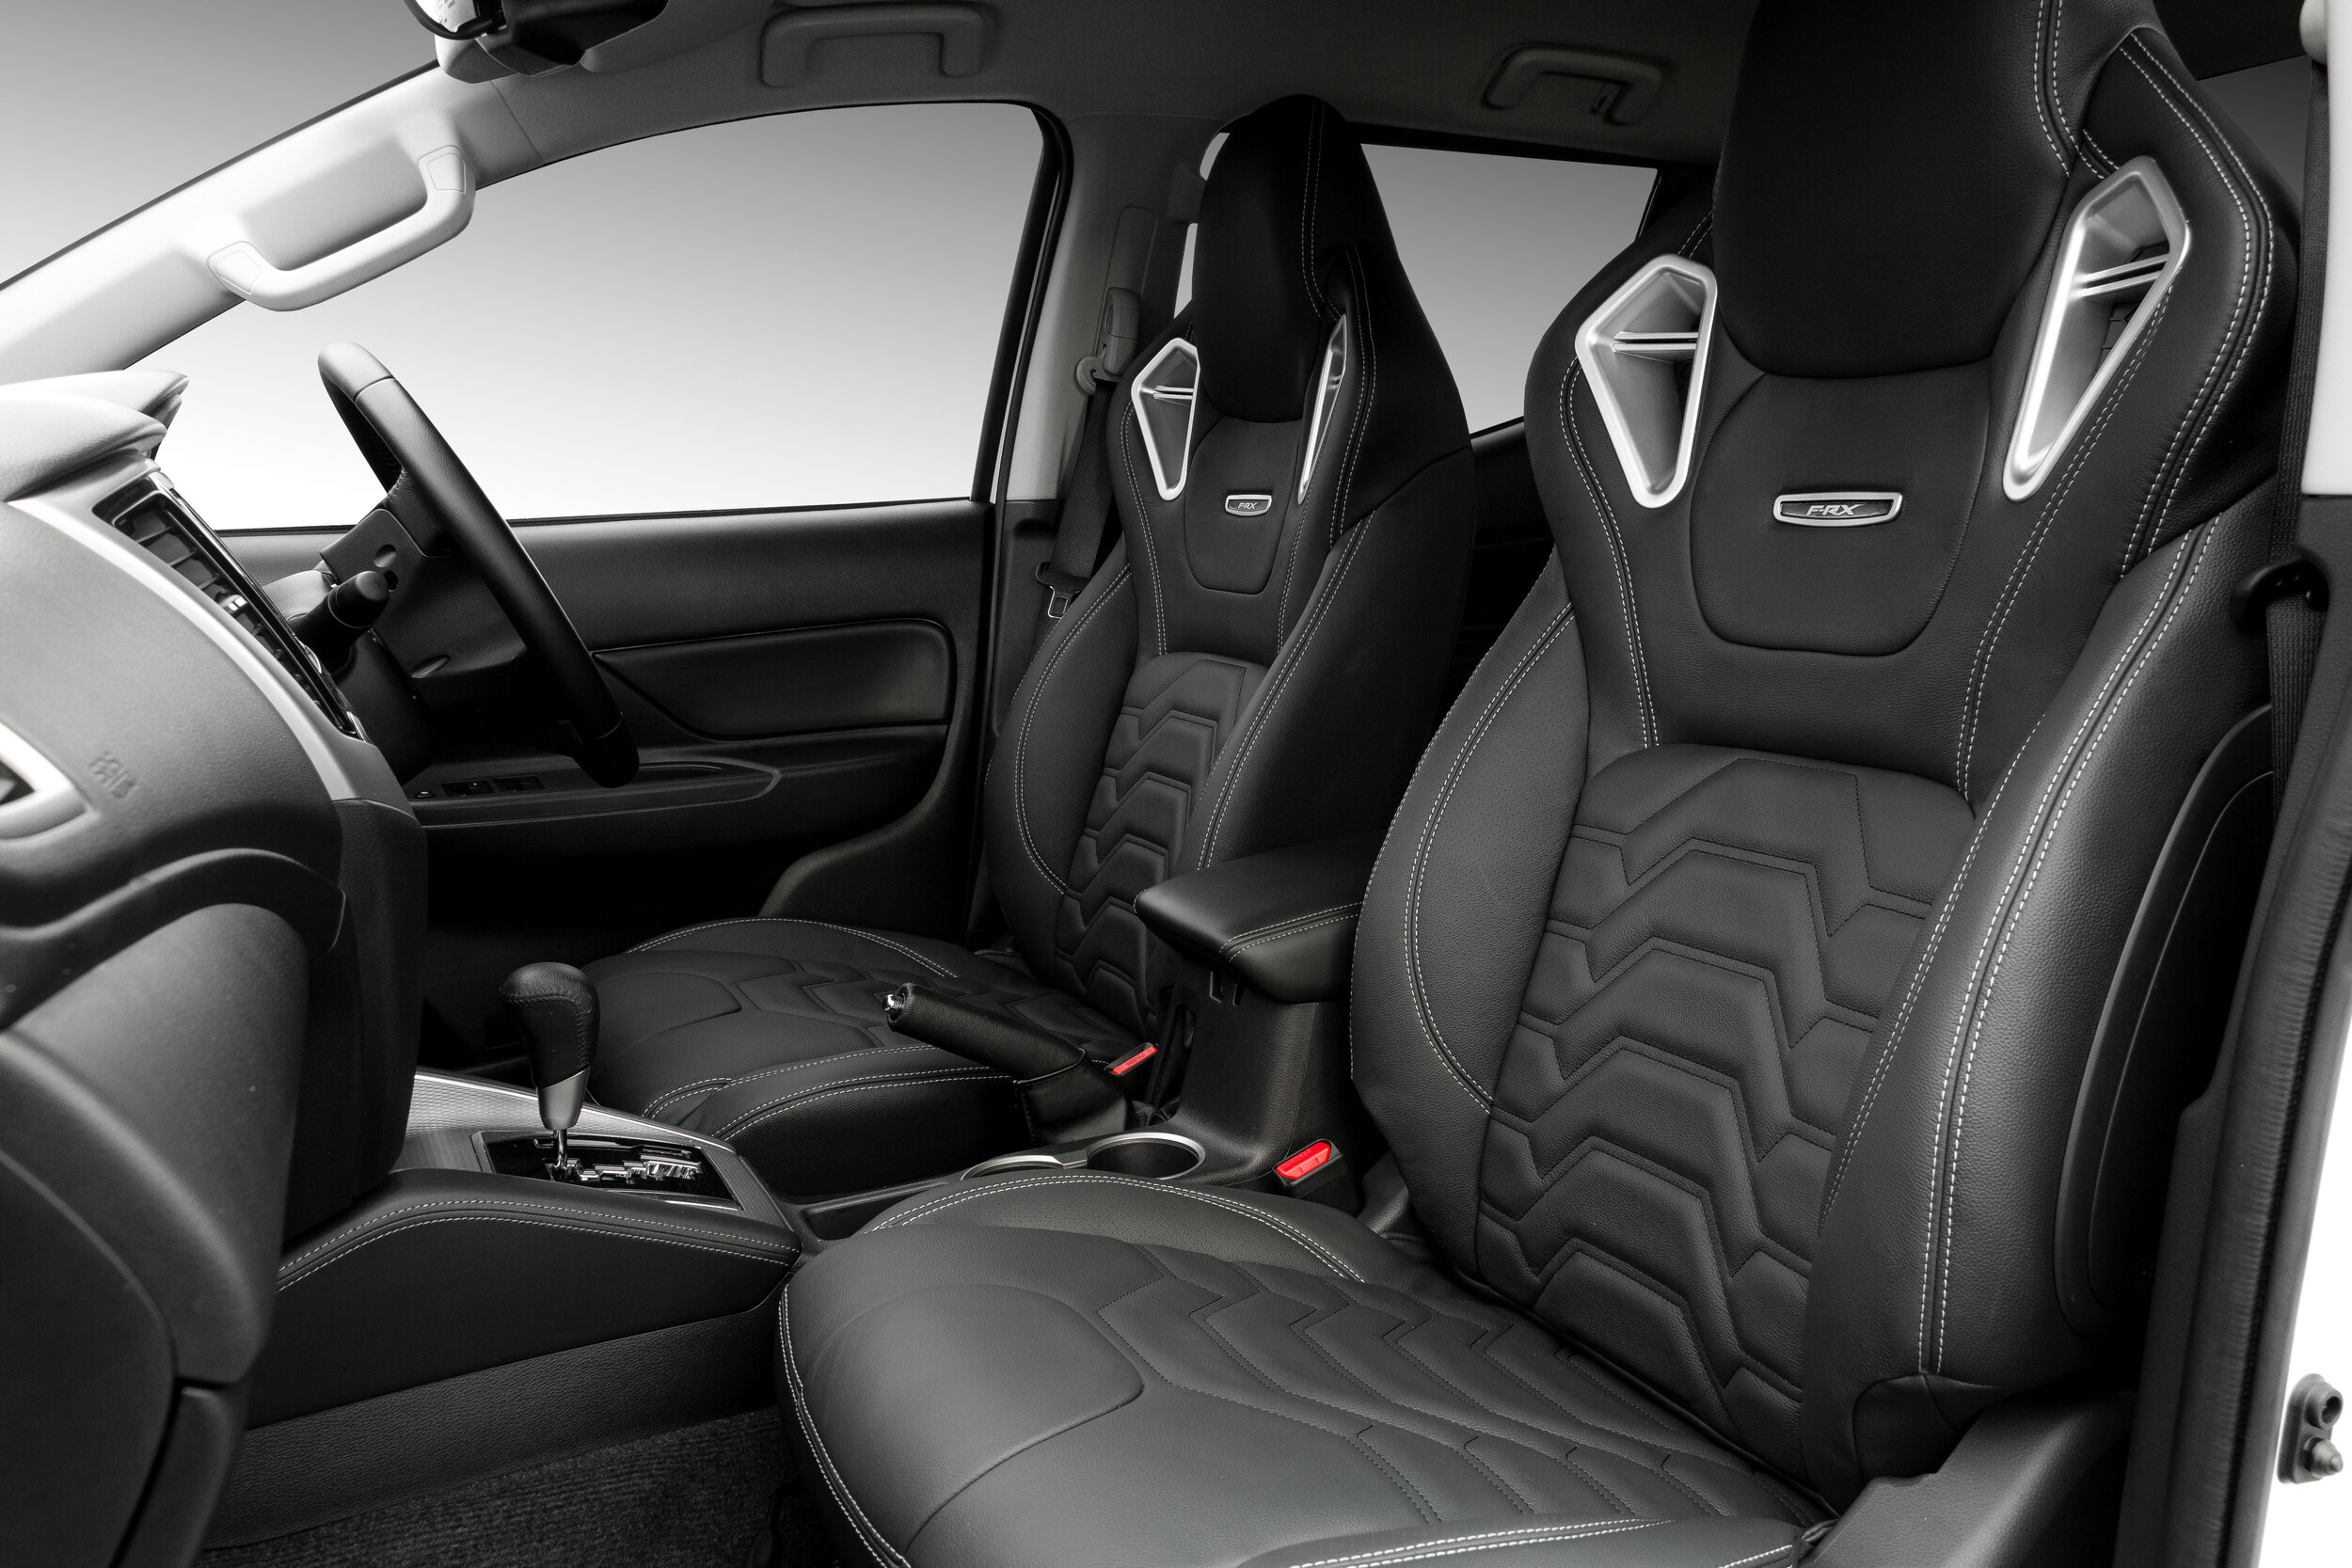 Upgraded Leather interior with RVE Monza Sport Seating